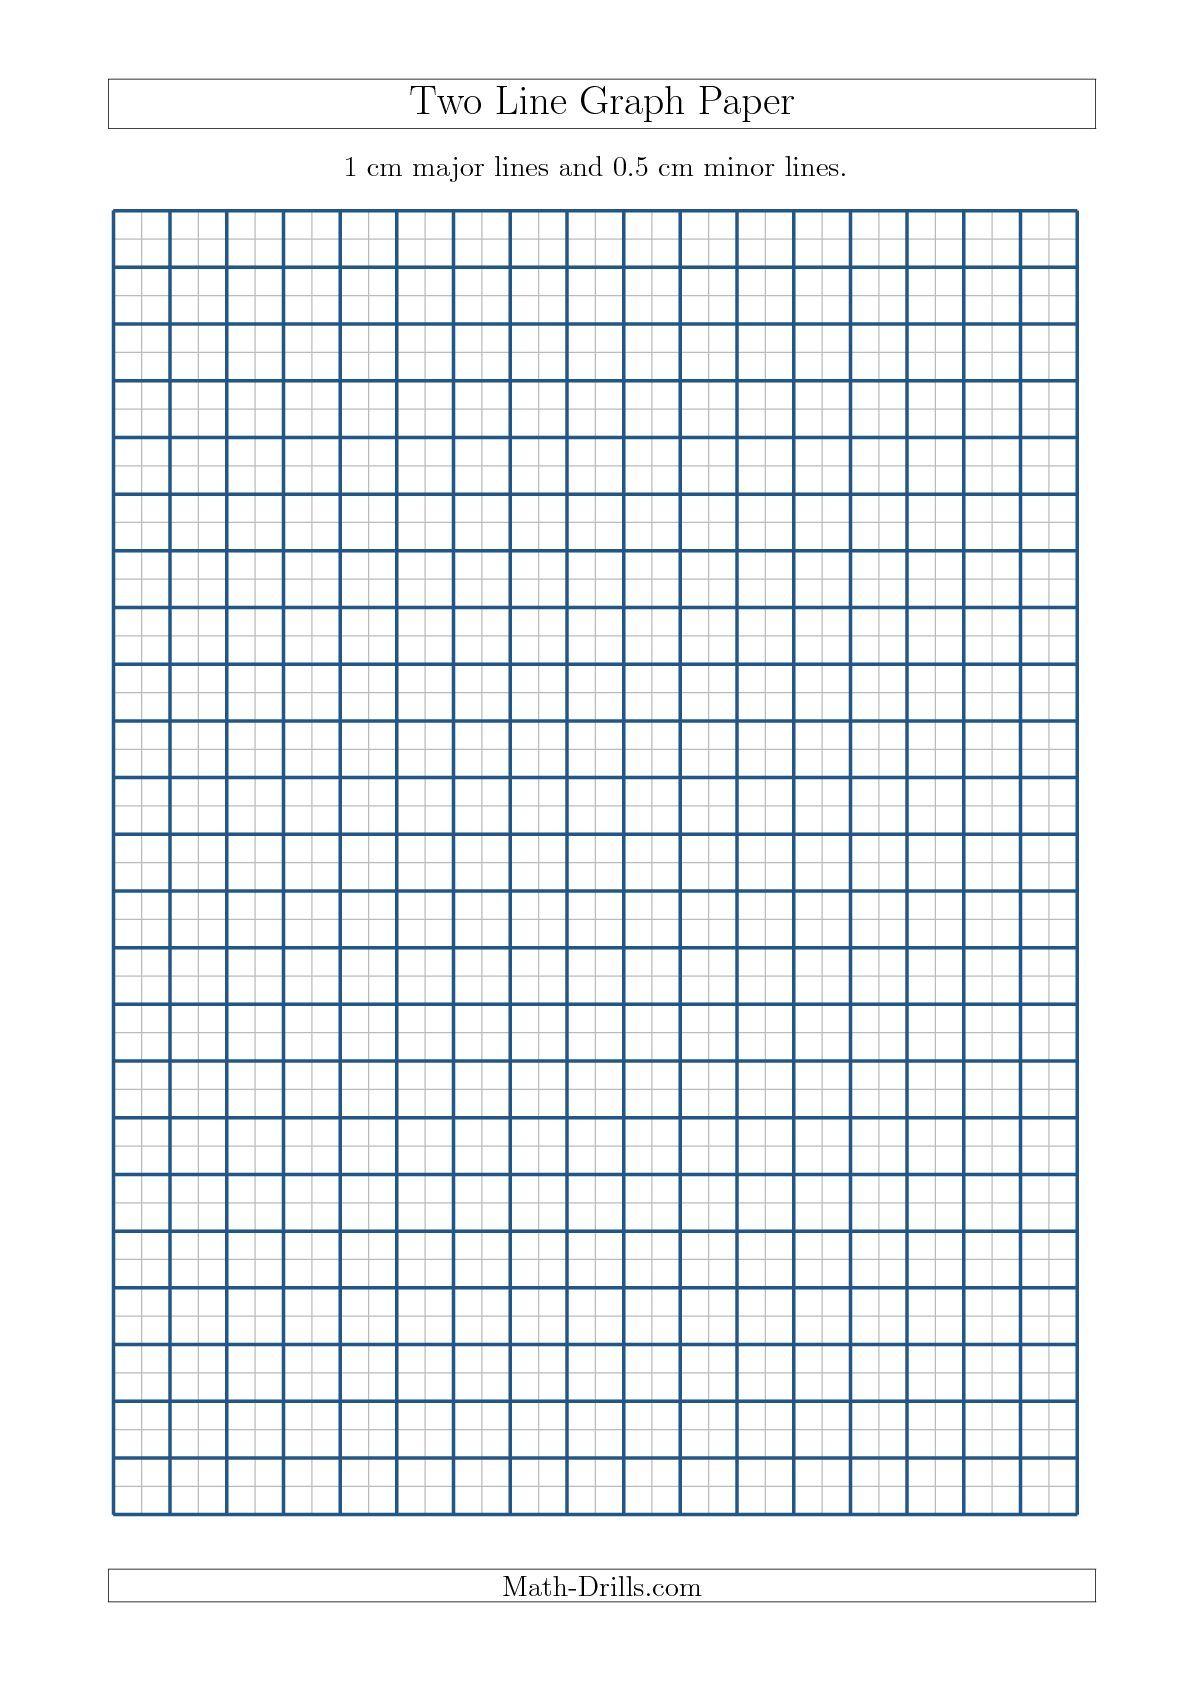 Two Line Graph Paper With 1 Cm Major Lines And 0.5 Cm Minor Lines - Cm Graph Paper Free Printable